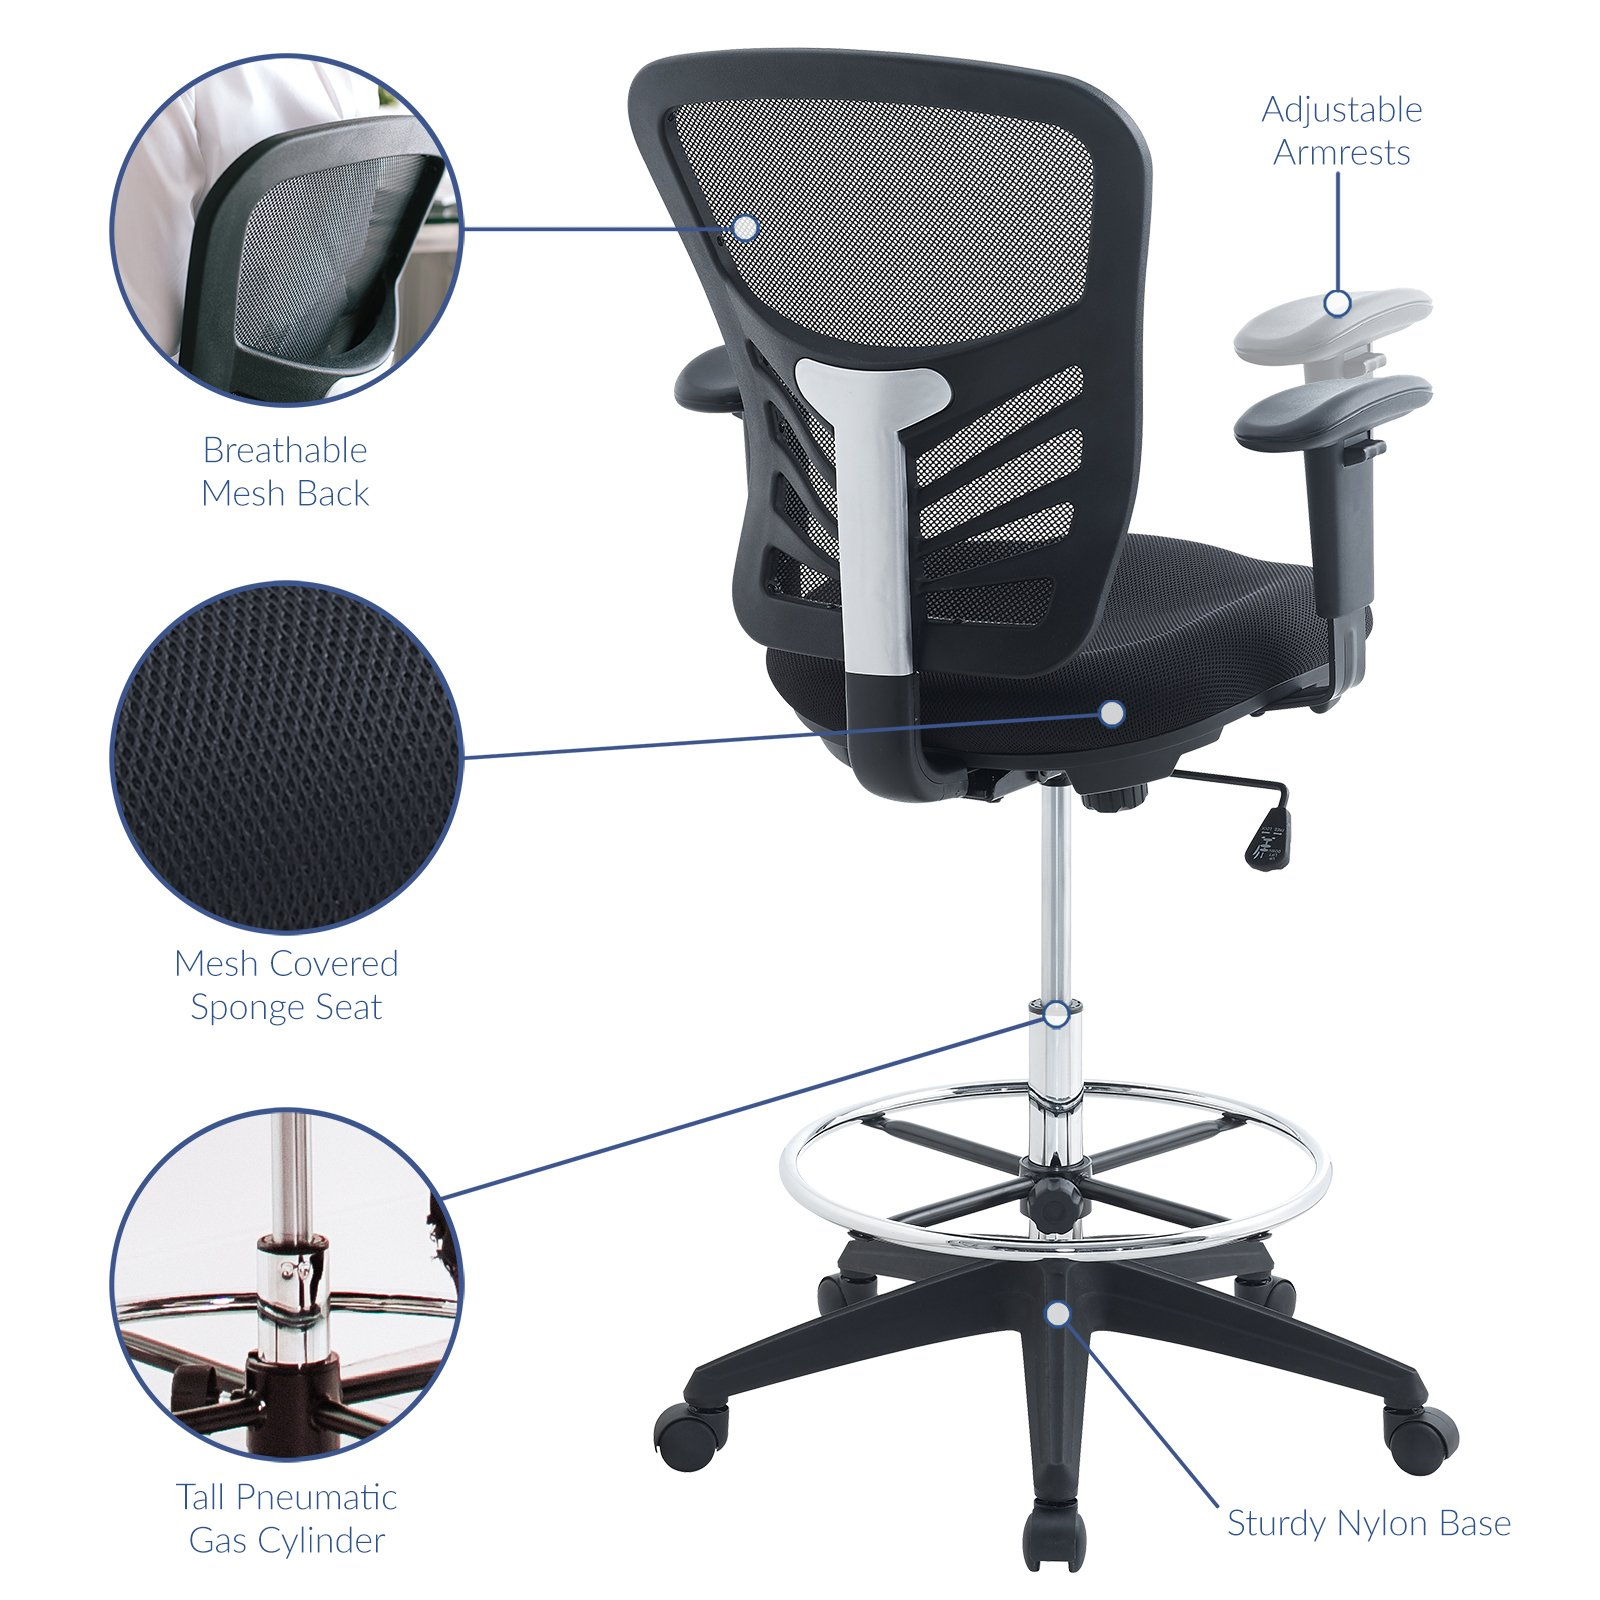 Modway Articulate Drafting Chair In Black   Reception Desk Chair   Tall  Office Chair For Adjustable Standing Desks   Drafting Table Chair    EEI 2289 BLK ...